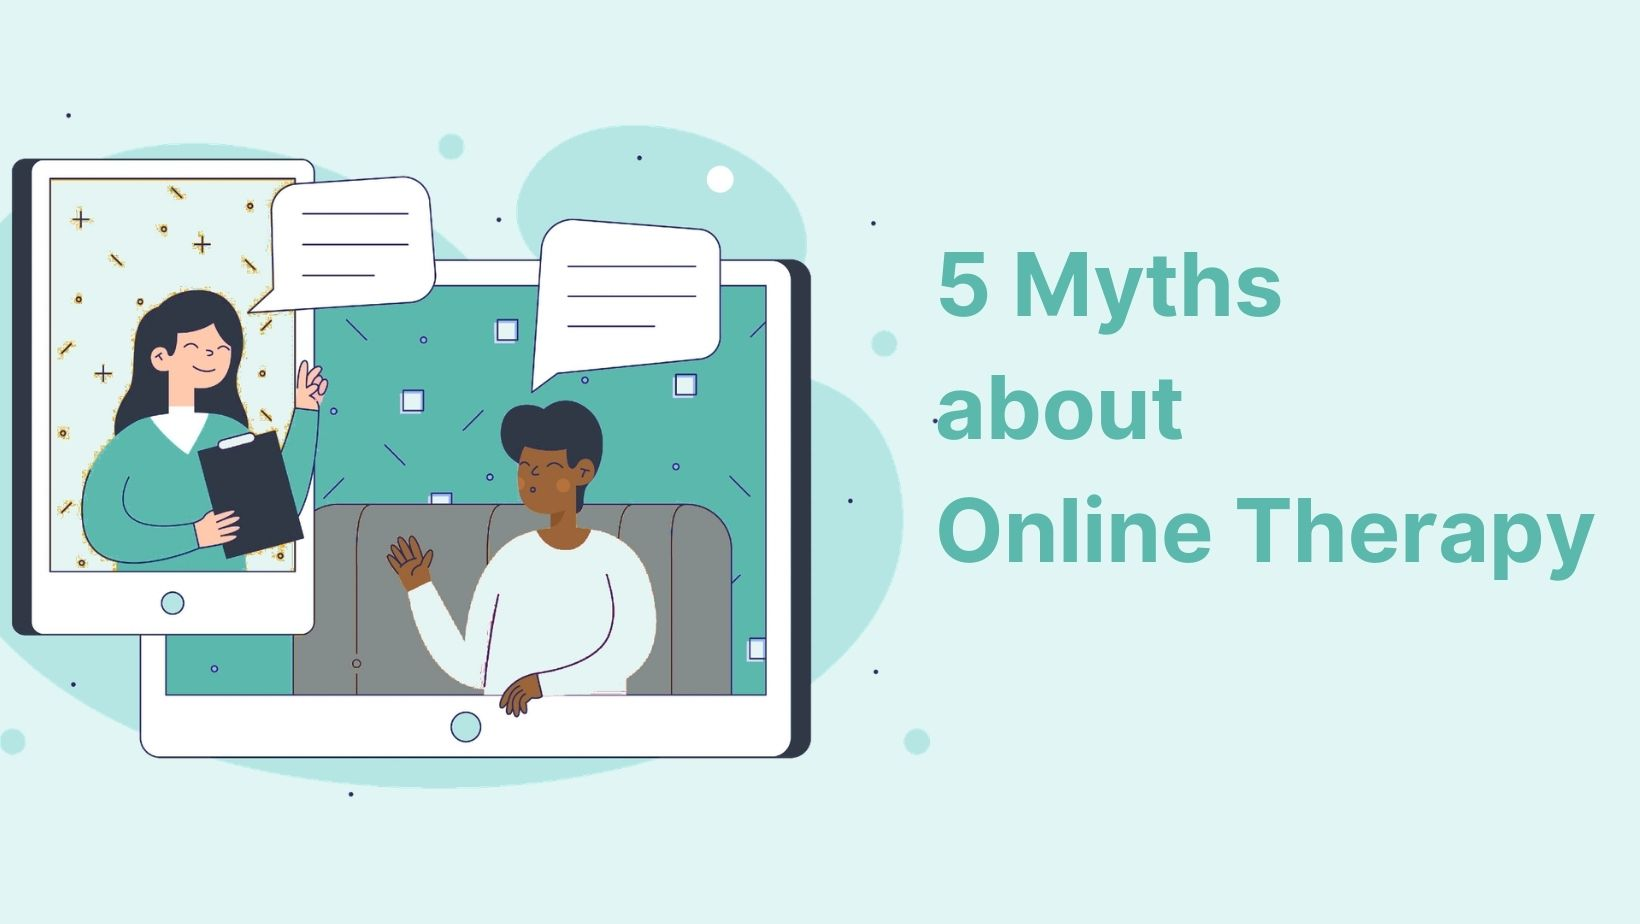 Online therapy misconceptions